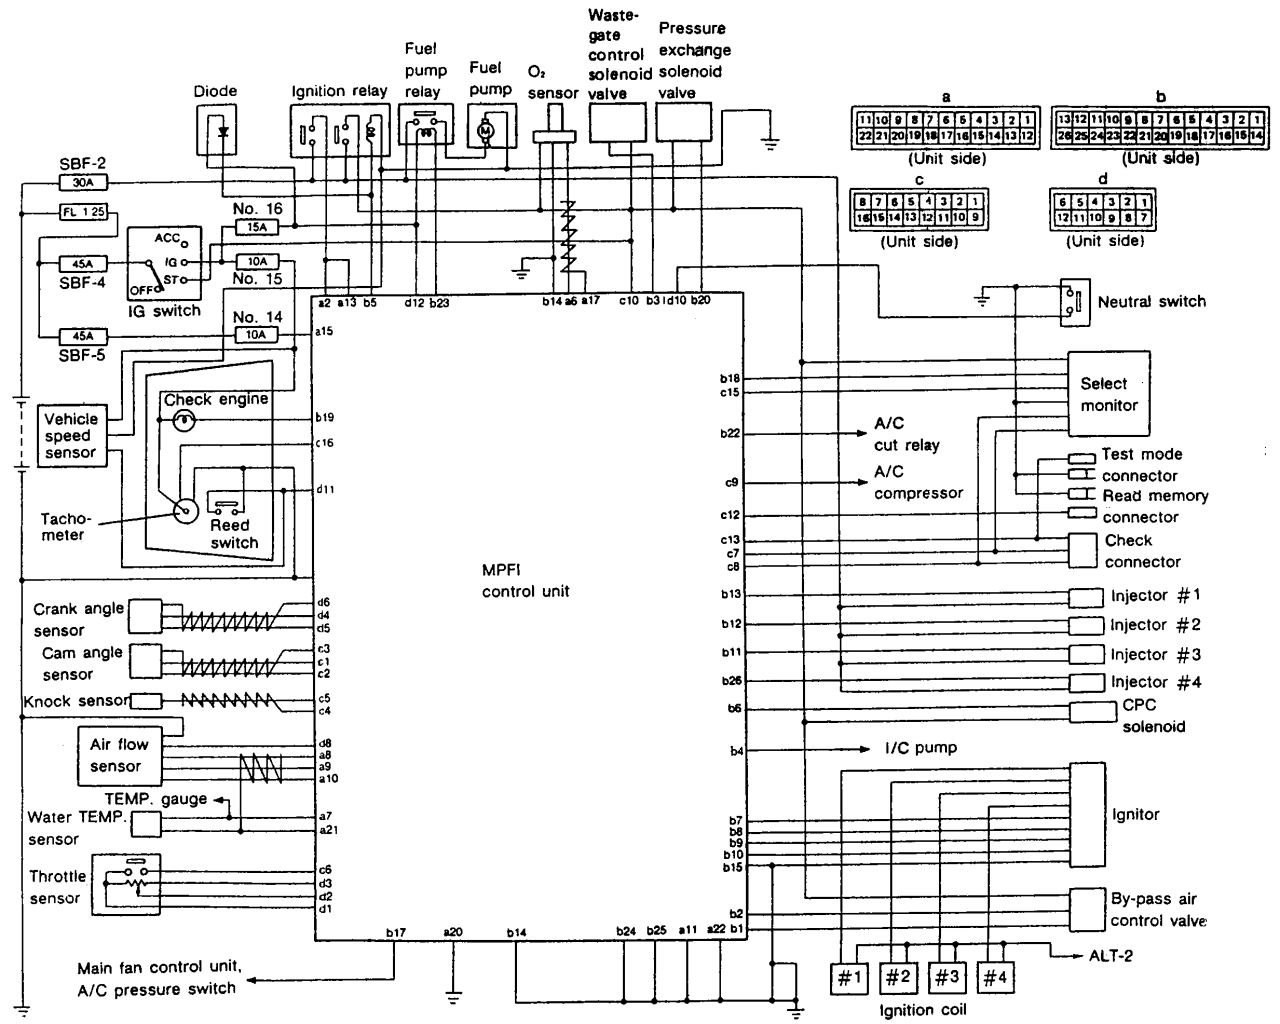 1999 Subaru Legacy Wiring Diagram L FULL Version HD Quality Diagram L -  OSTY.LABO-WEB.FRosty.labo-web.fr